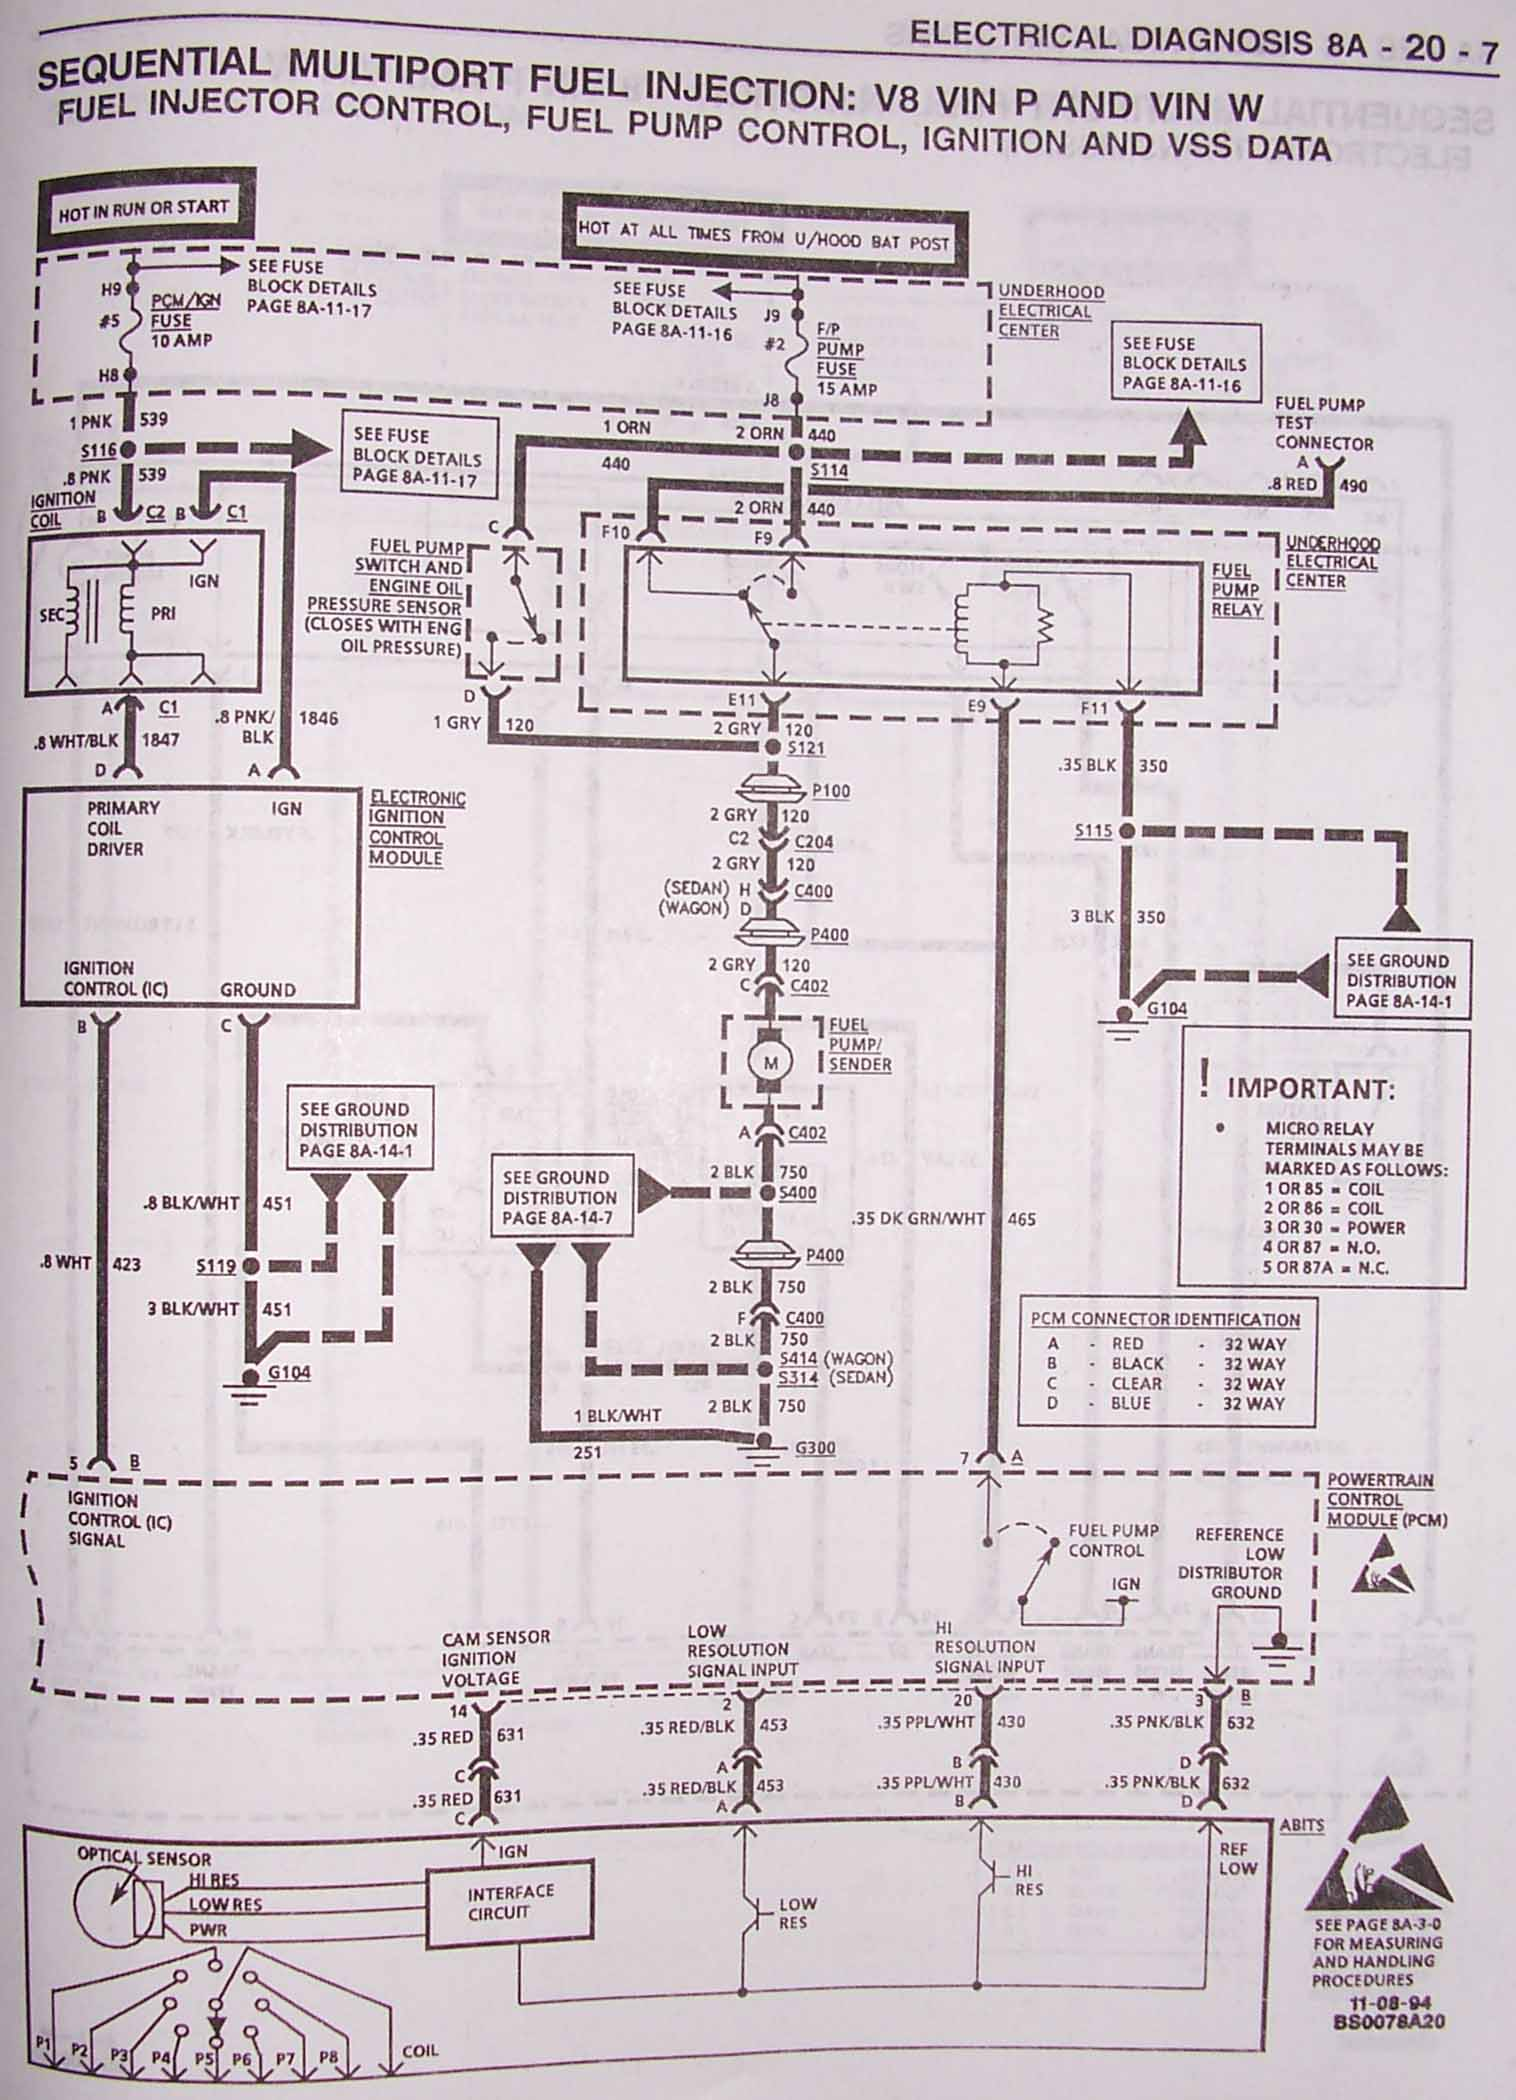 1995 Impala Ss Fuel Pump Wiring Diagram Diagrams S10 Pickup Car Fuse Box Camaro Fan